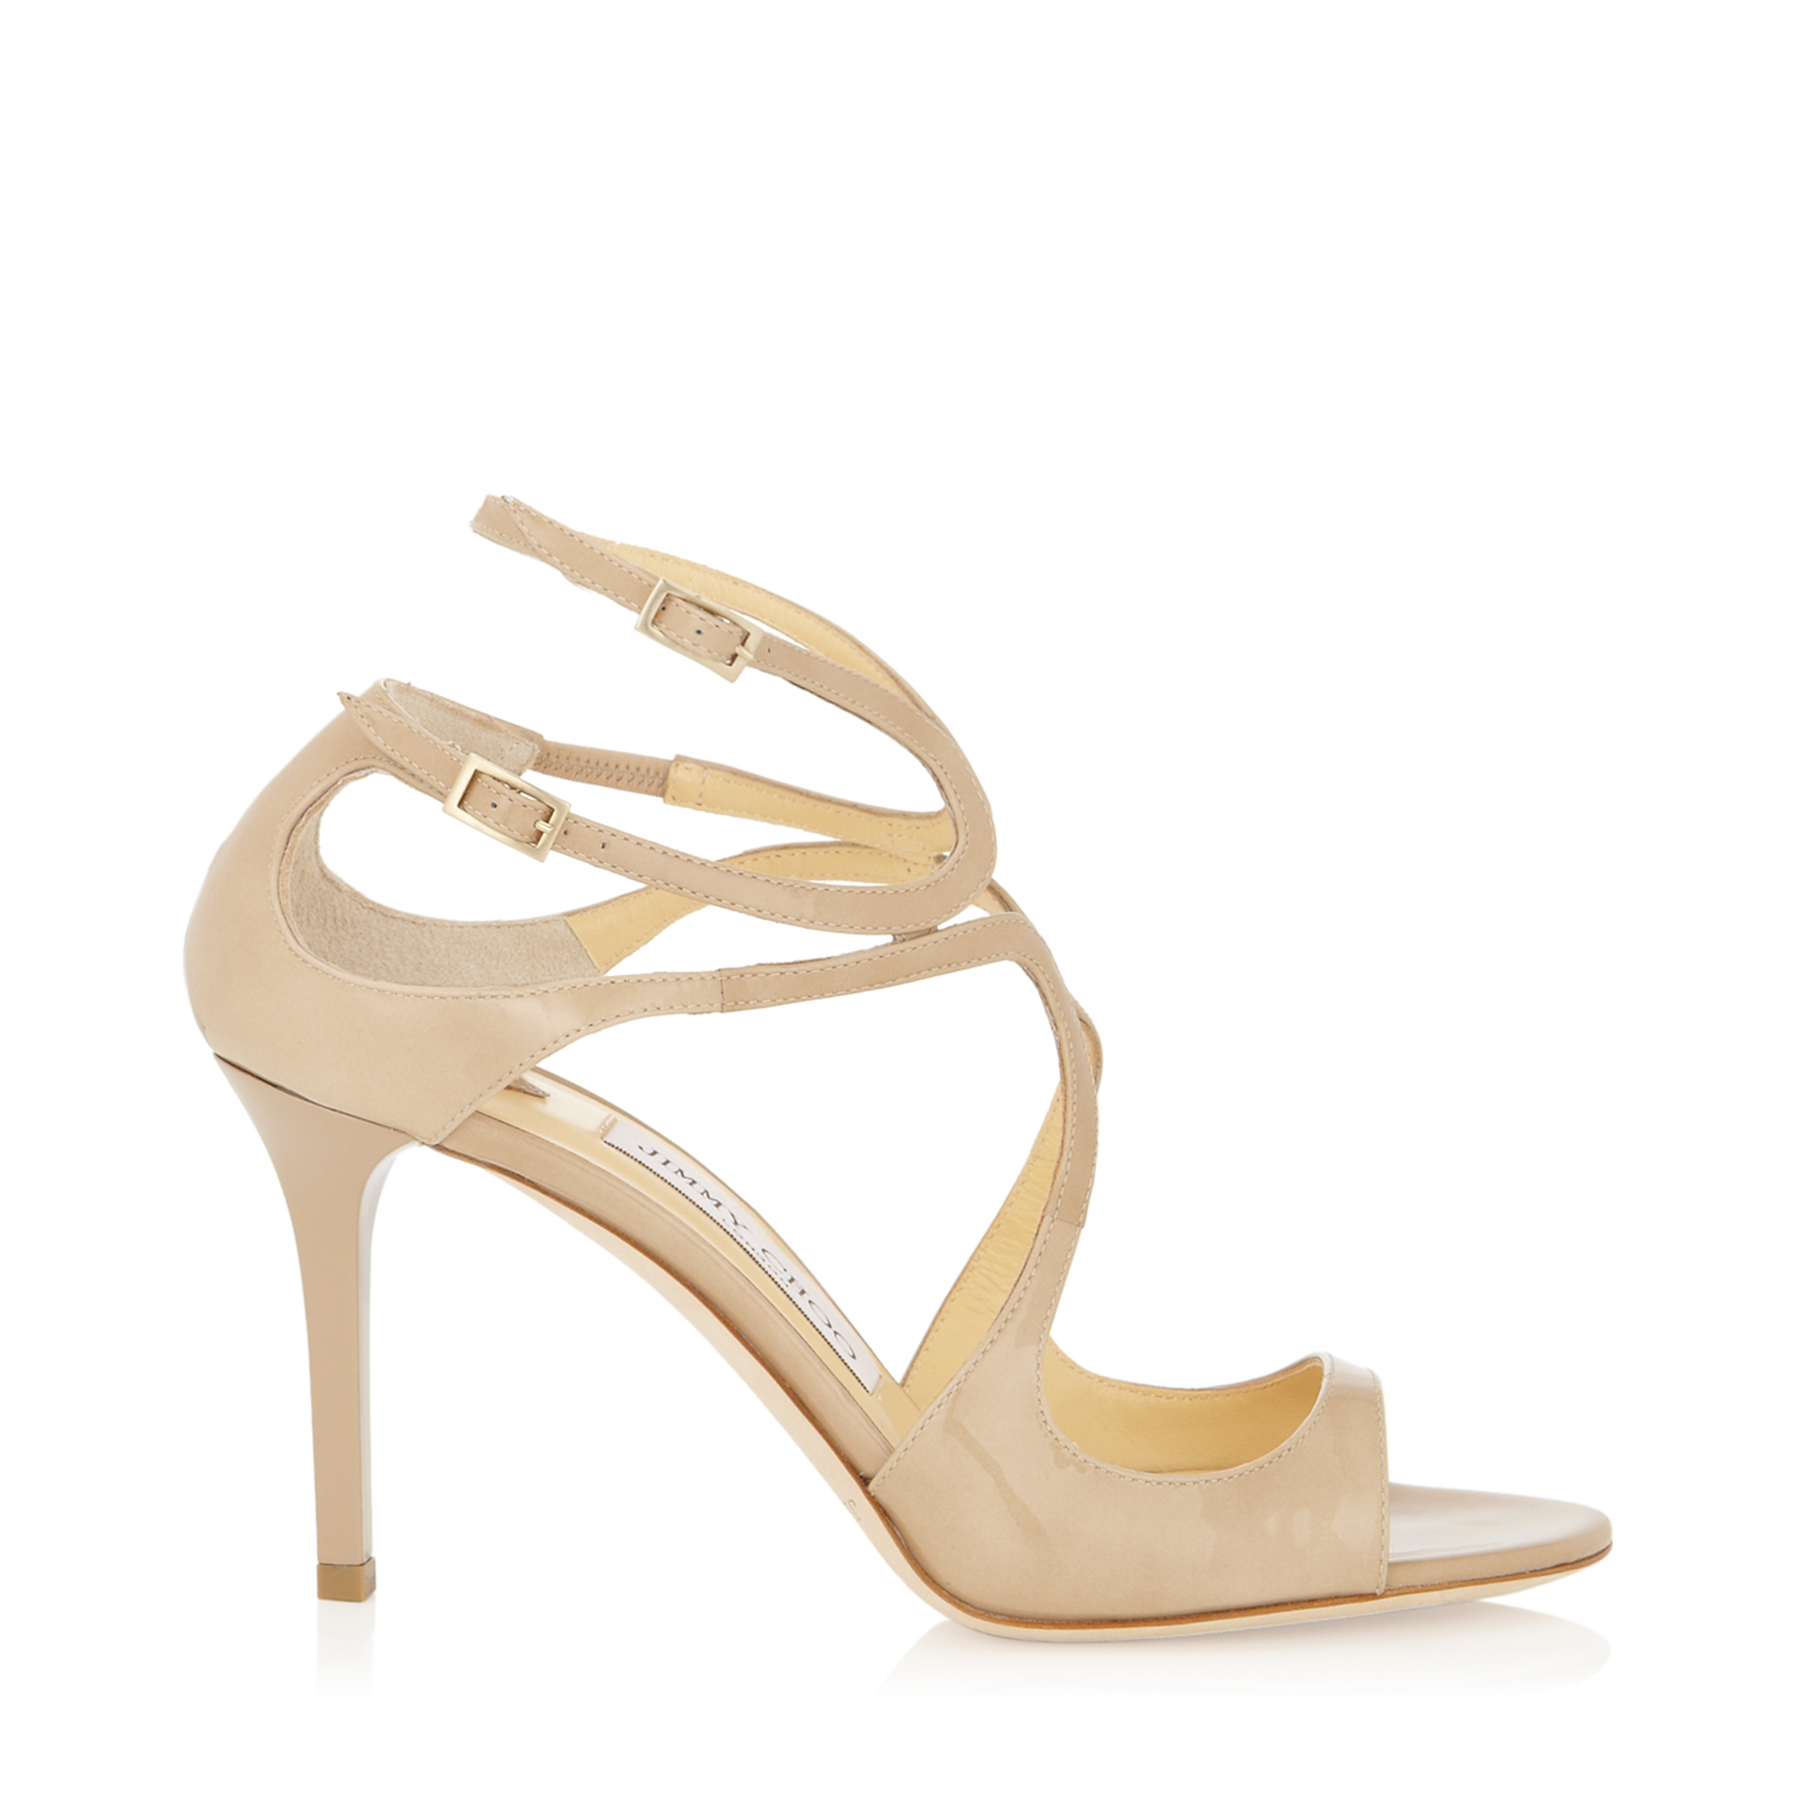 IVETTE Nude Patent Leather Strappy Sandals by Jimmy Choo